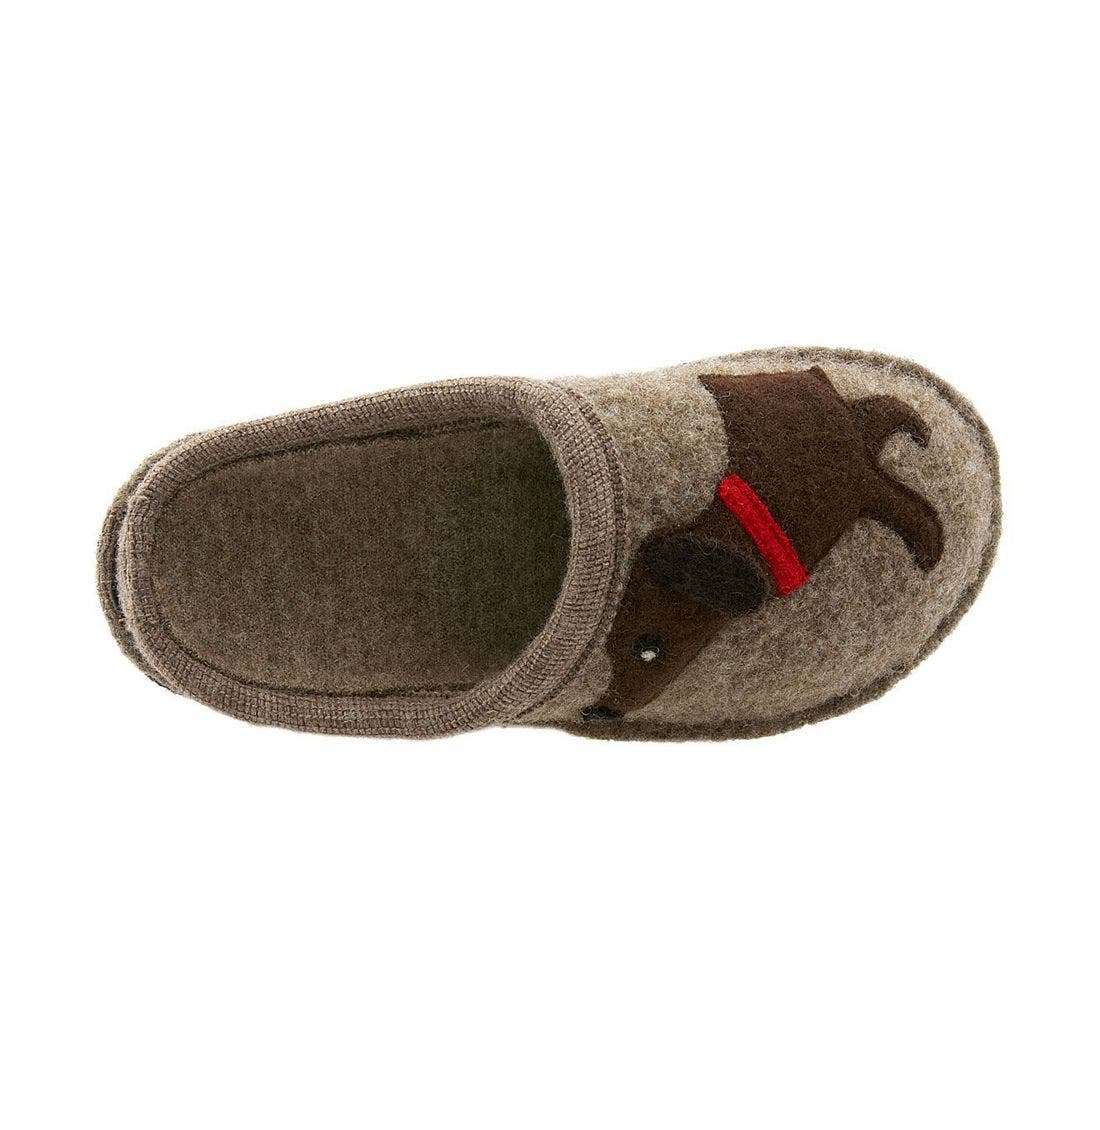 'Doggy' Slipper,                             Alternate thumbnail 9, color,                             EARTH